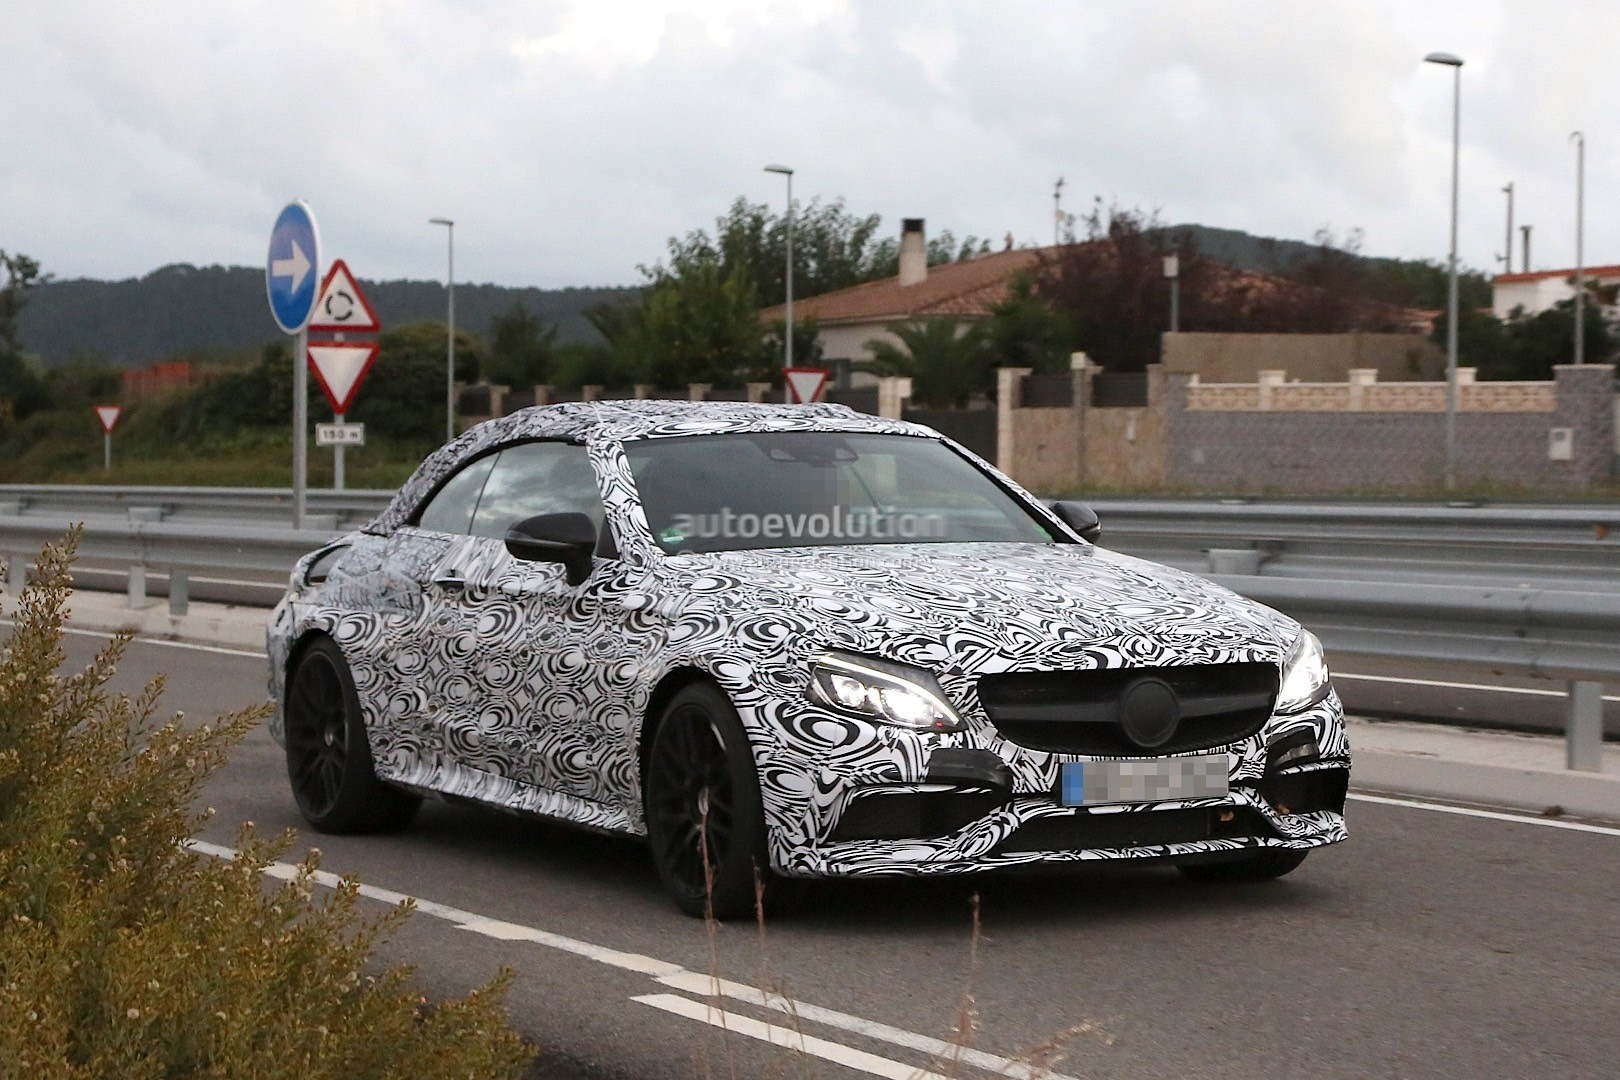 2017 mercedes amg c63 cabriolet spied for the first time looks production ready autoevolution. Black Bedroom Furniture Sets. Home Design Ideas